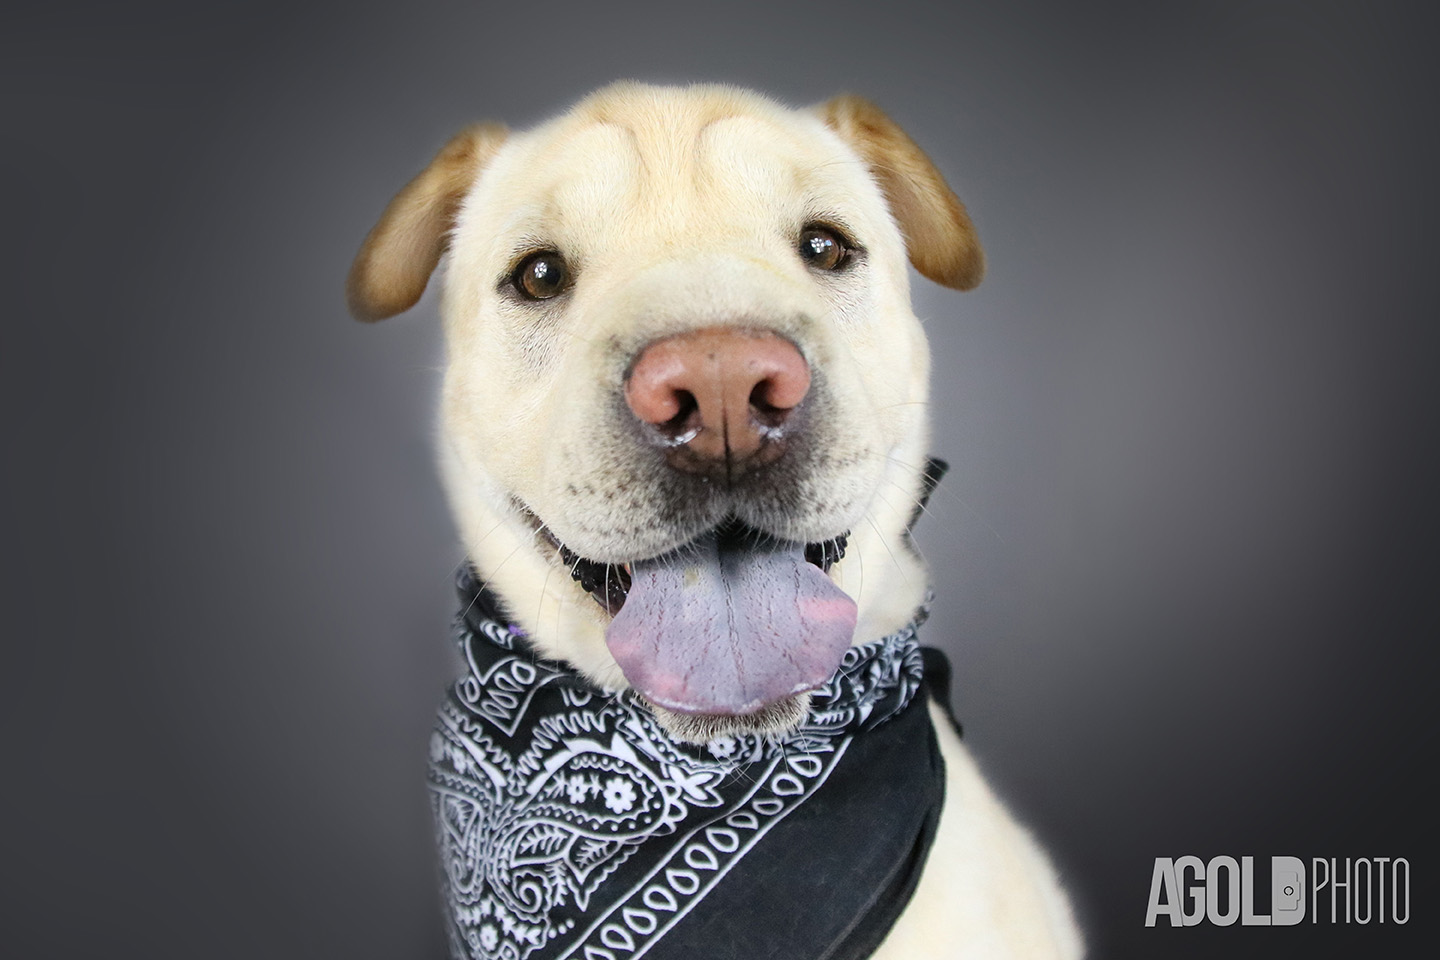 Don, a stray dog from Israel, will steal your heart